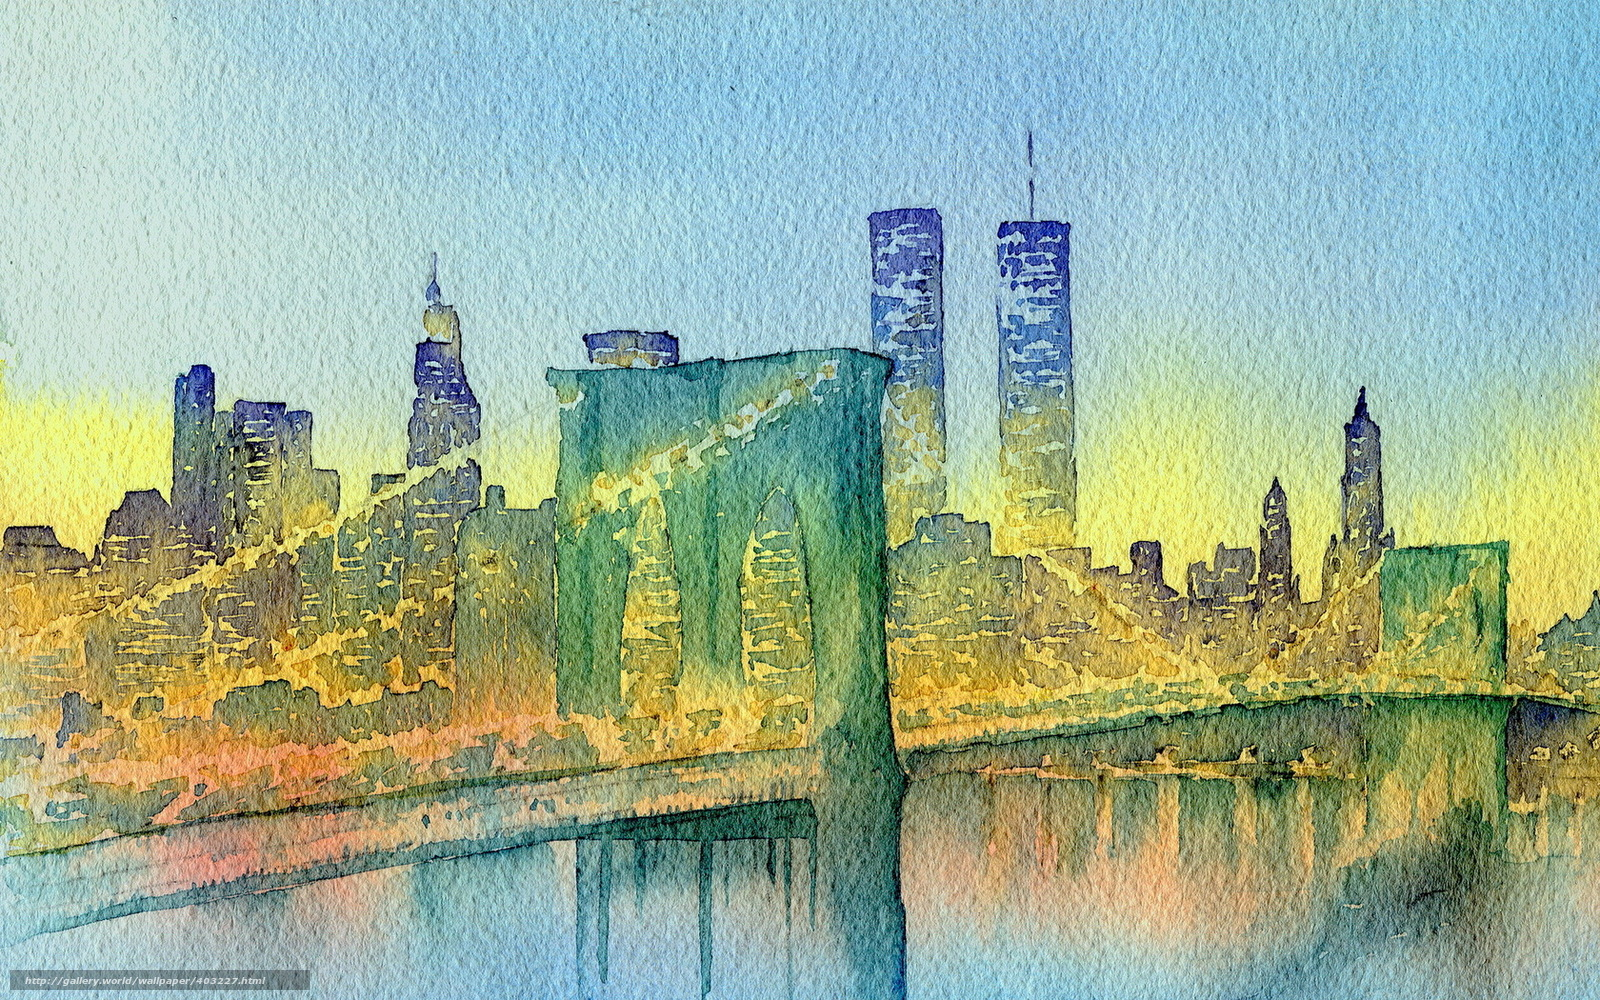 The Mediums Range From Watercolor To Oil Sketches More Art Inspiring Wallpapers Will Be Added In This Category As Well Future Posts